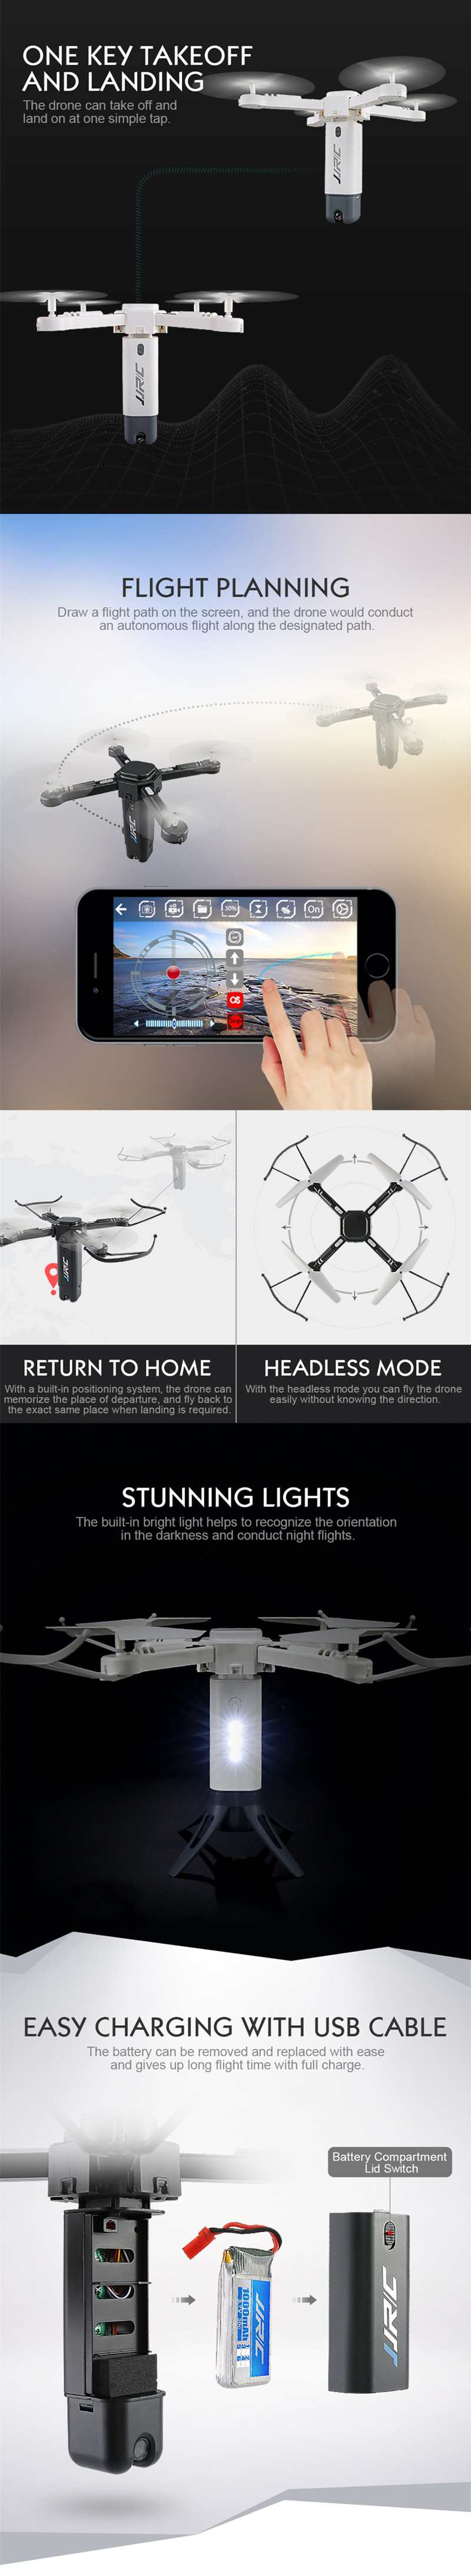 JJRC H51 Rocket-like Fold WiFi Selfie FPV 720P Camera Altitude Hold RC Quadcopter Helicopter Automatically Return Headless Mode